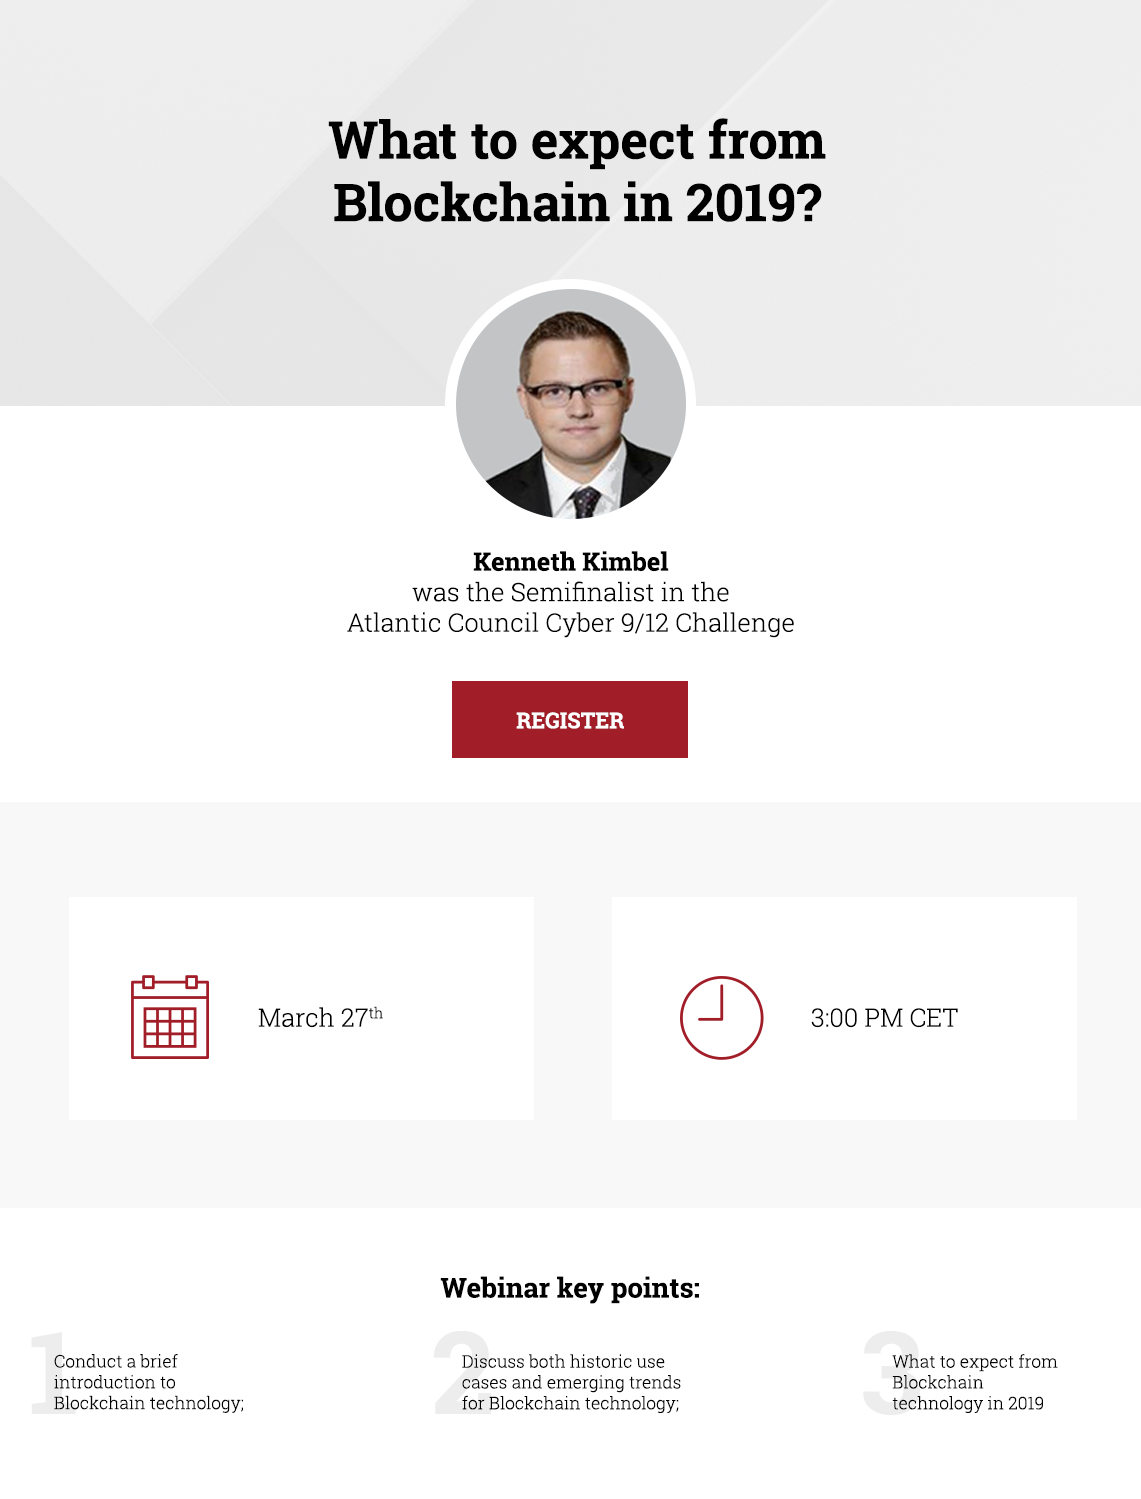 What to expect from Blockchain in 2019?